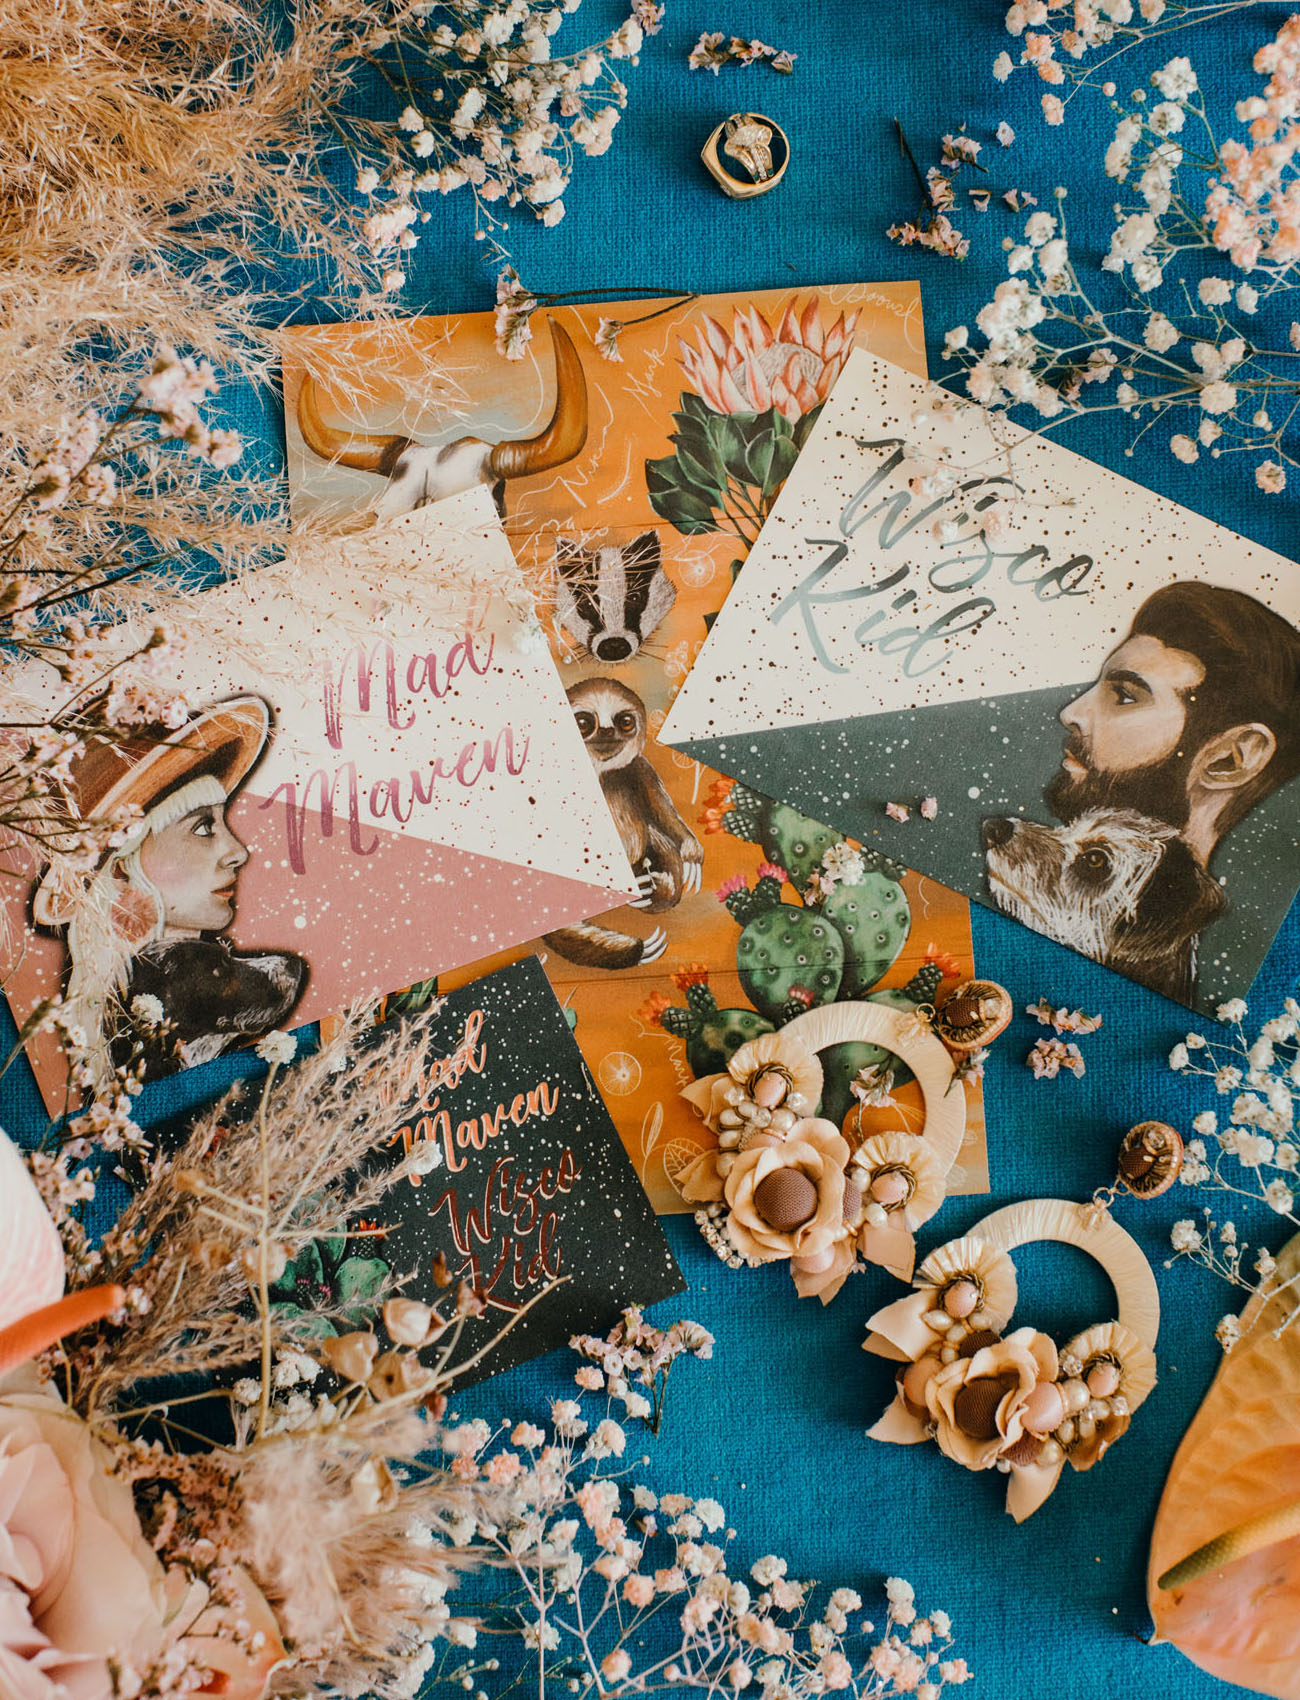 The wedding stationery was colorful and creative just like the couple themselves